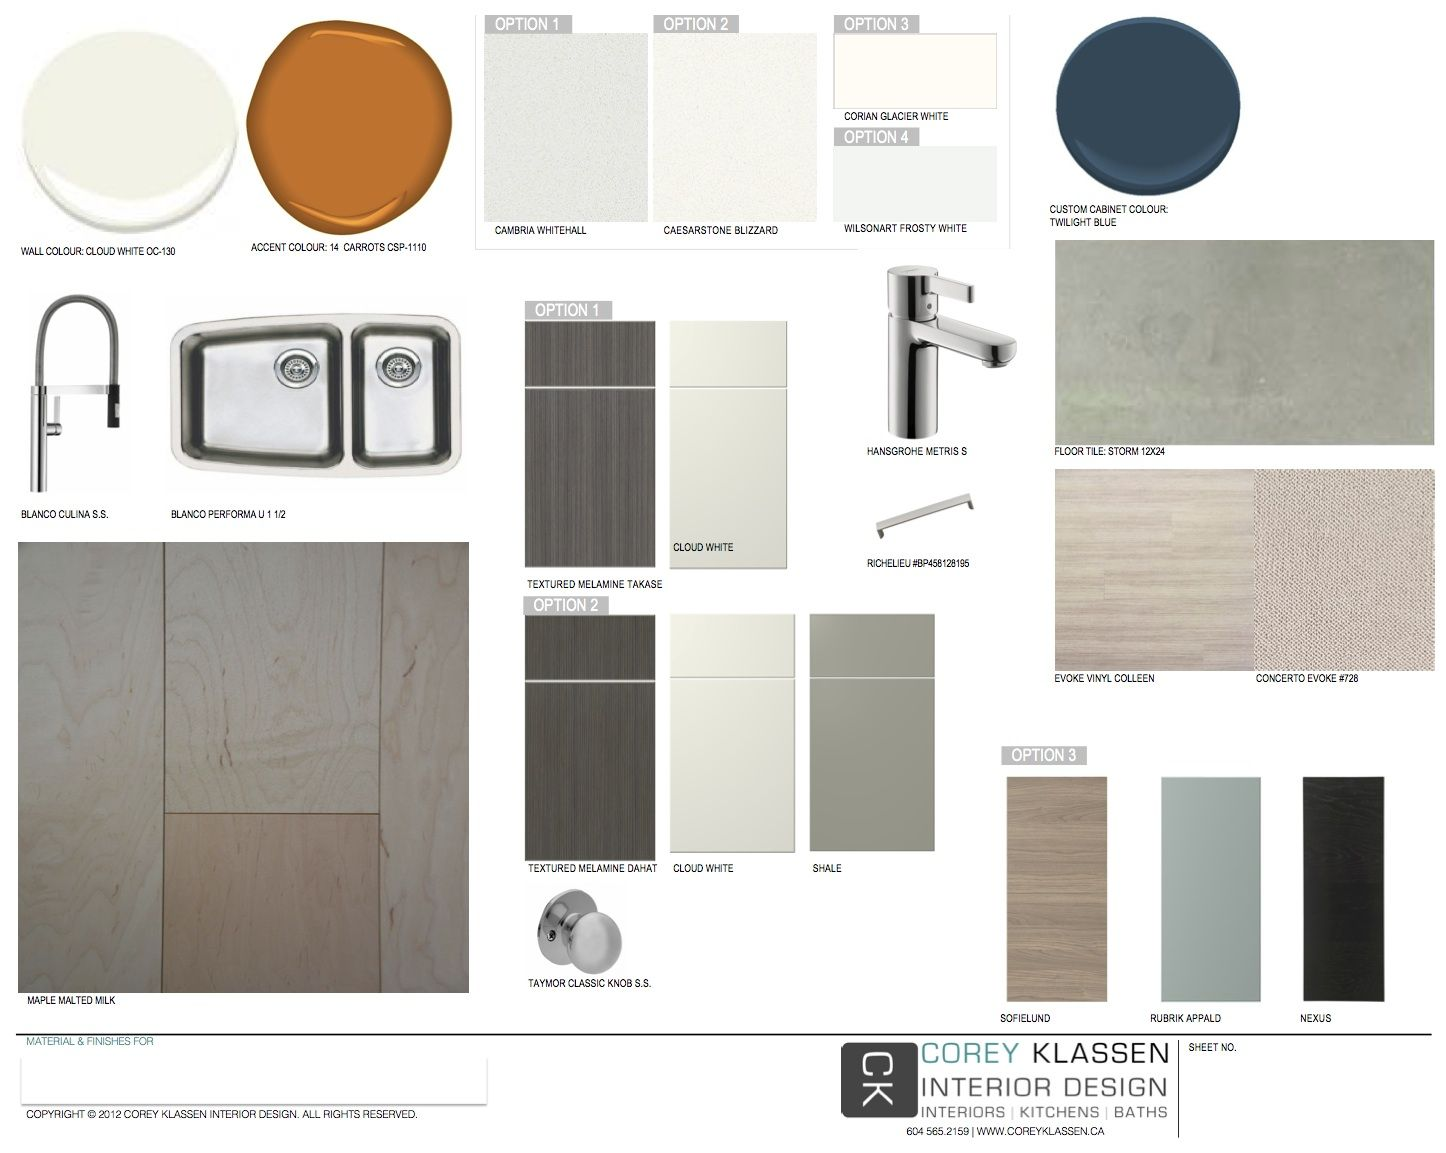 Digitial material board from corey klassen interior design - Materials of interior design ...